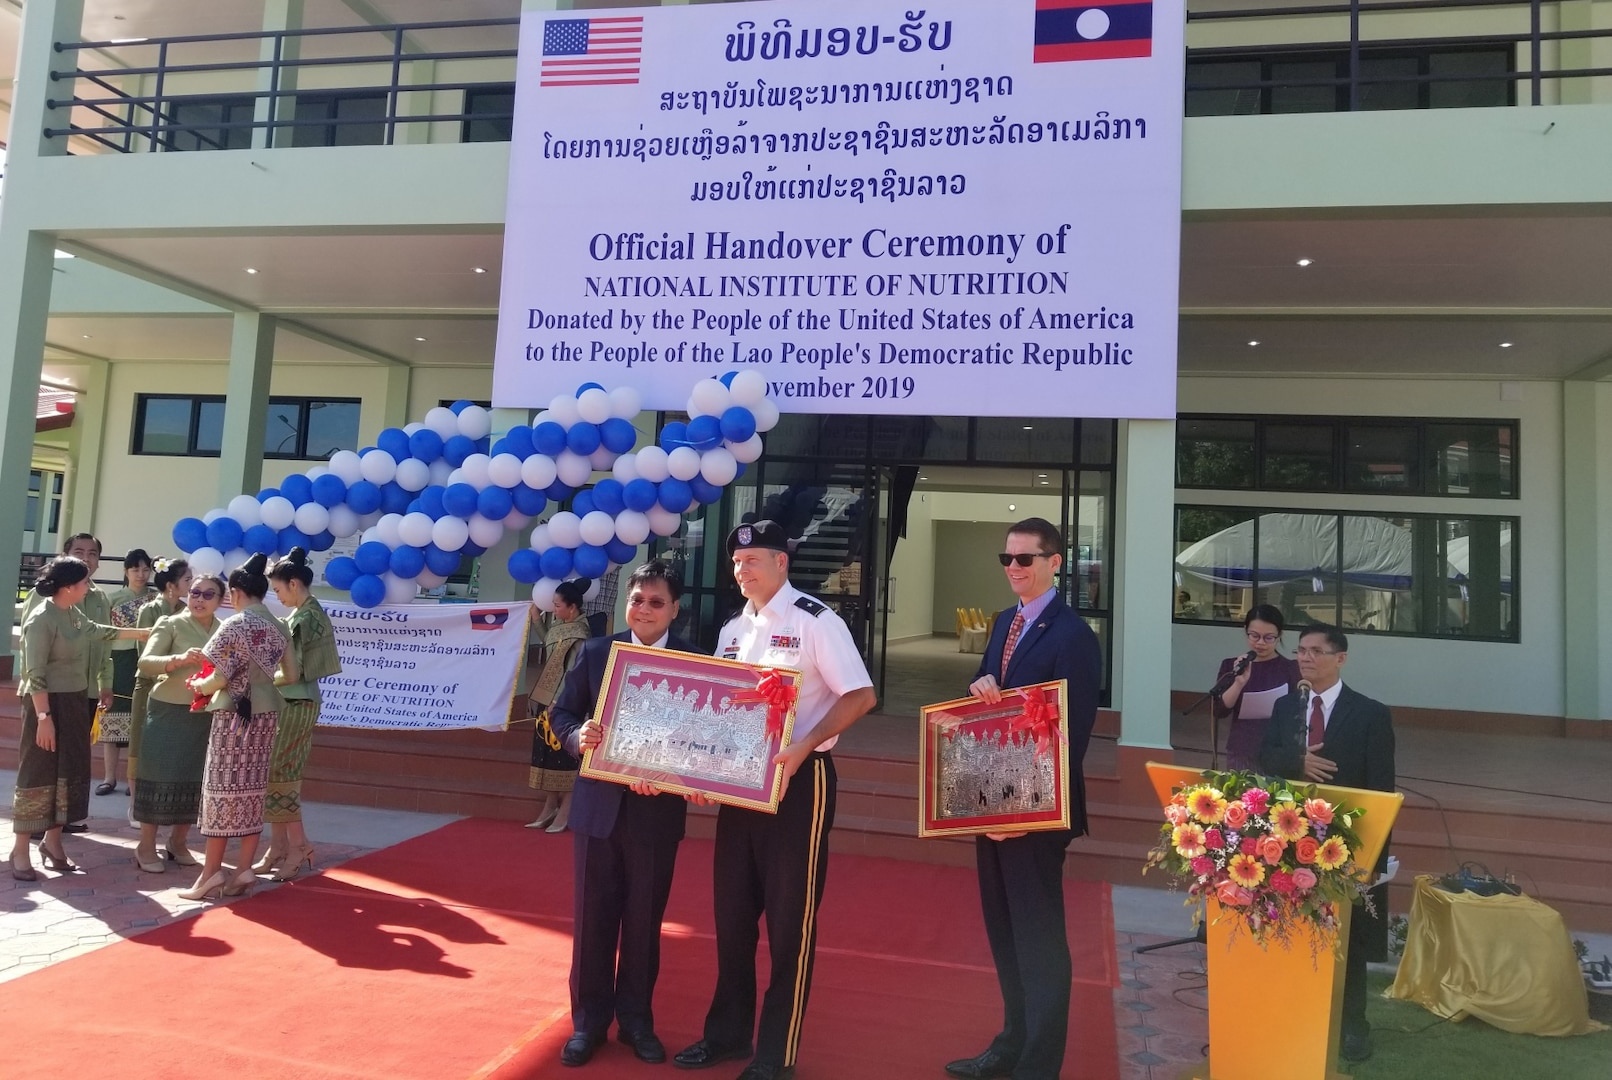 U.S. Army Corps of Engineers Partners to Battle Malnutrition in Laos